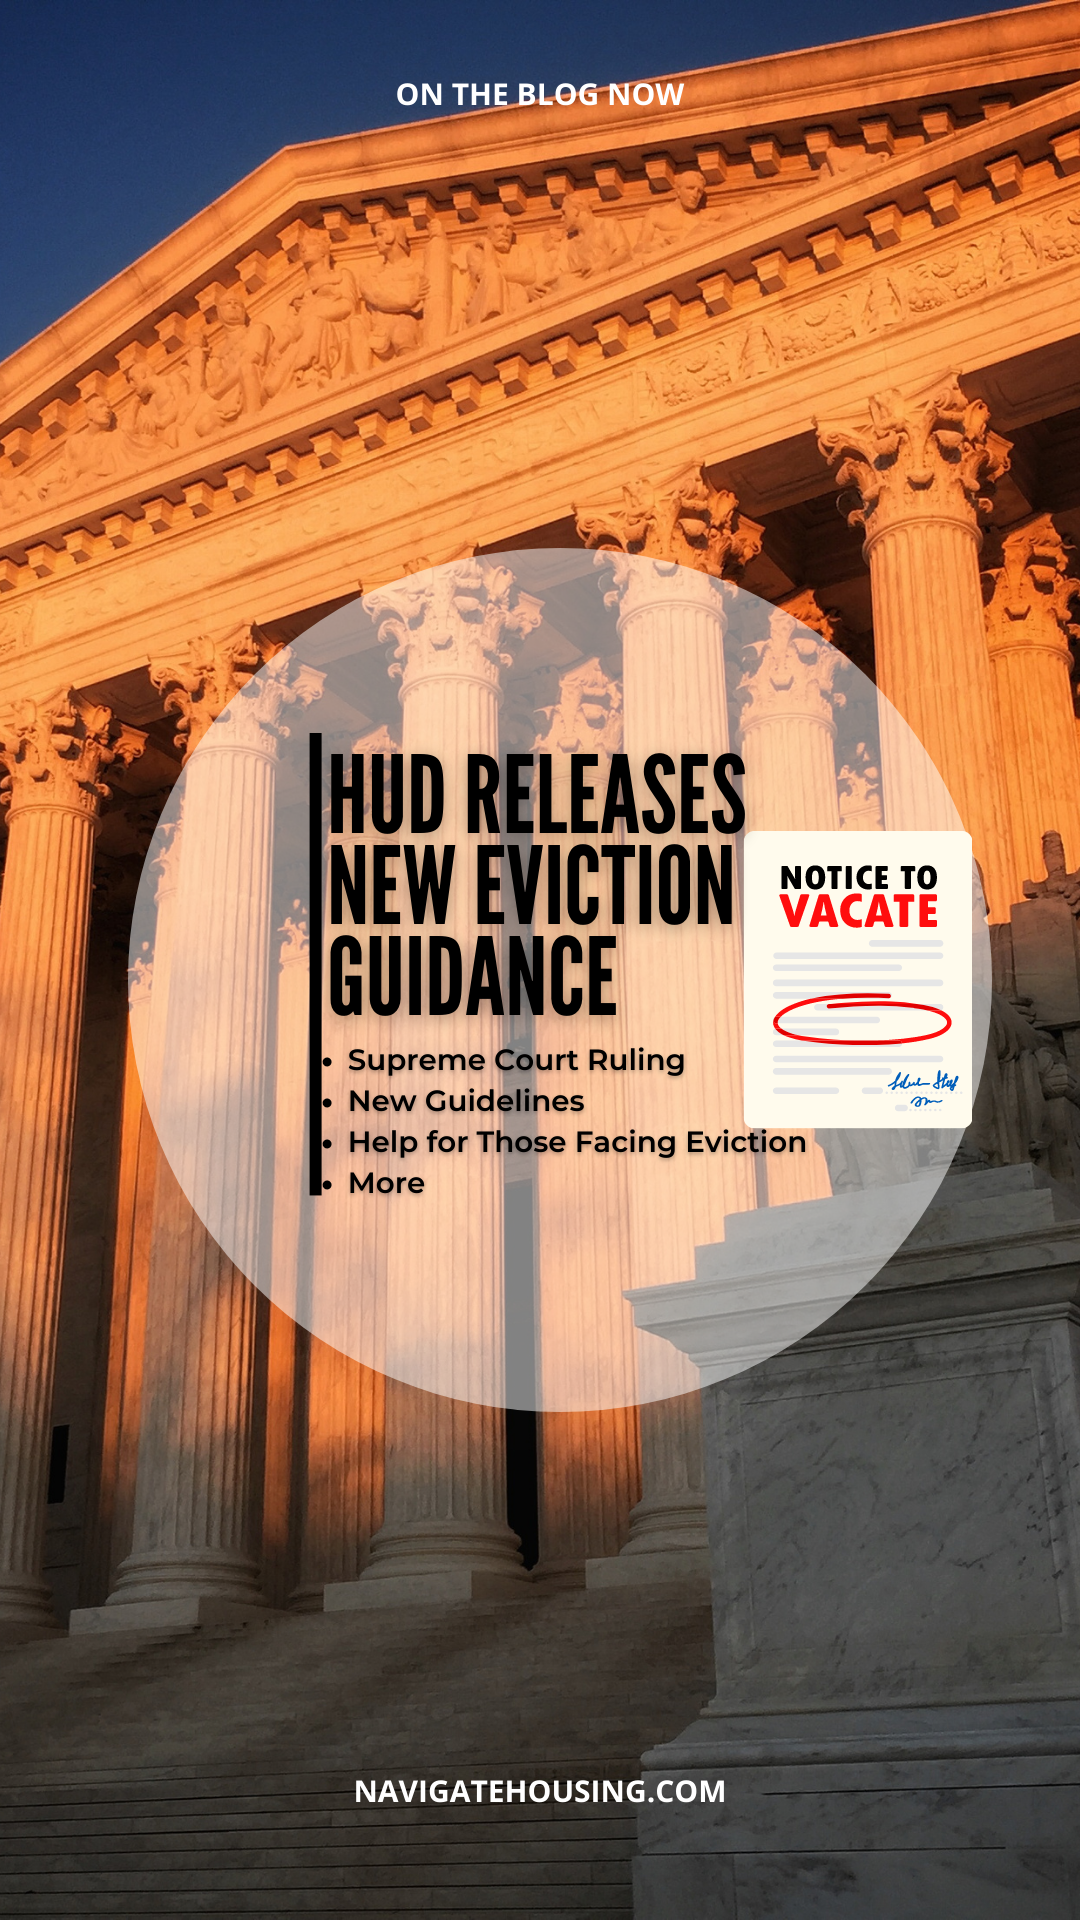 HUD Releases New Eviction Guidance